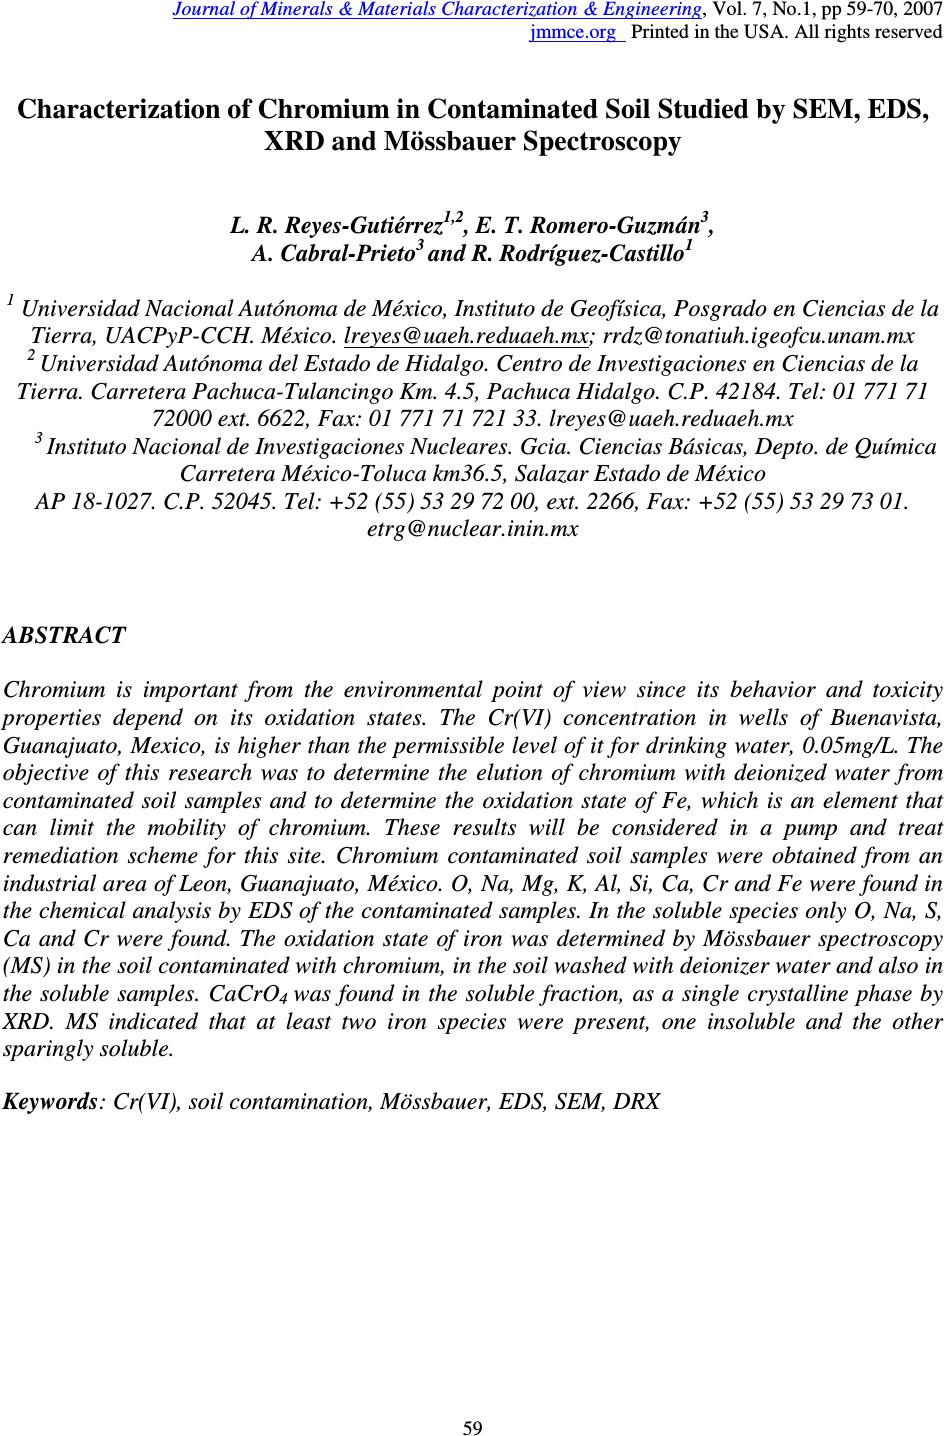 mossbauer thesis Mossbauer influence technique, quantity nine, files the court cases of the 9th symposium on mossbauer influence method the symposium was once backed by way of the recent england nuclear company and curiosity was once targeting spectroscopy and functions, with greater than ordinary emphasis on new method.